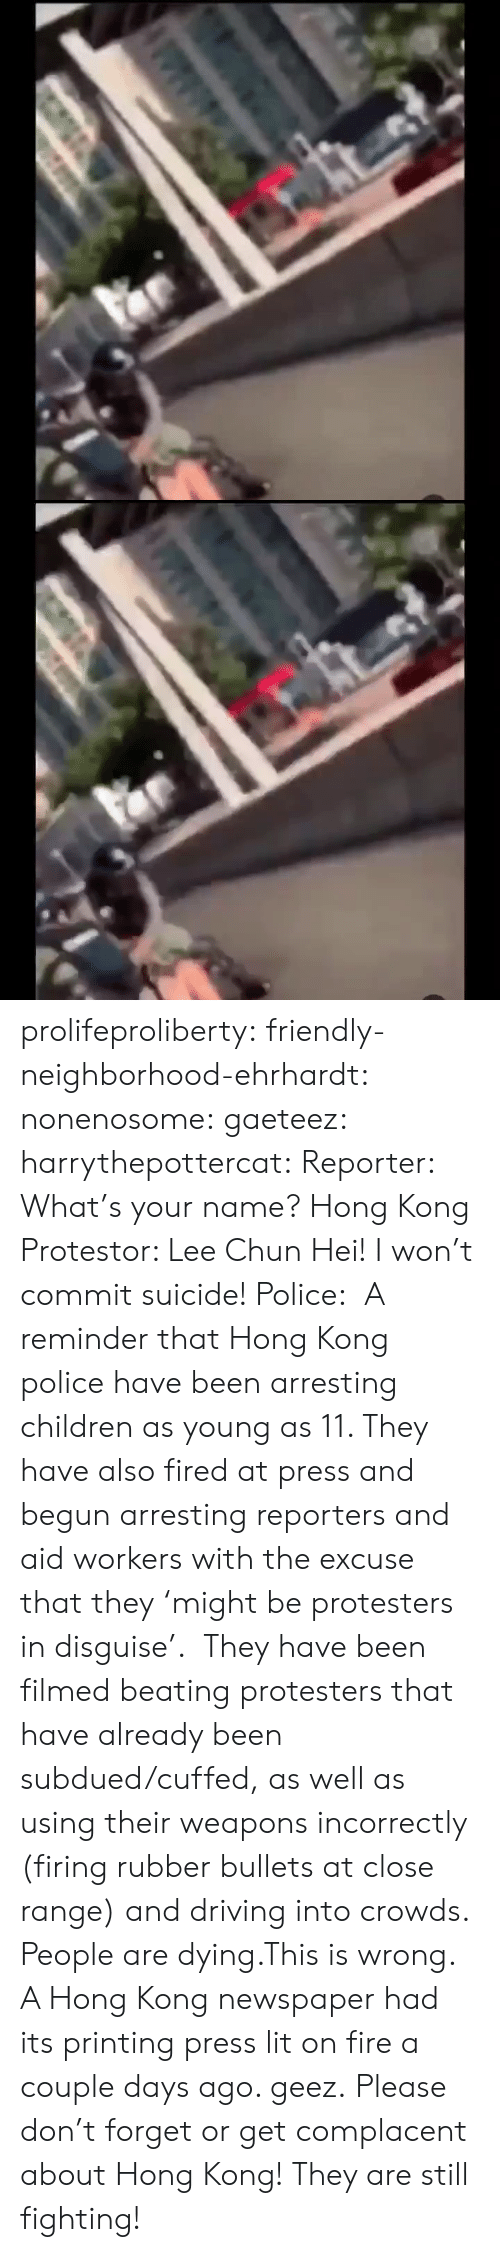 fee: के.  ॥ल prolifeproliberty:  friendly-neighborhood-ehrhardt:  nonenosome:  gaeteez:   harrythepottercat:  Reporter: What's your name? Hong Kong Protestor: Lee Chun Hei! I won't commit suicide! Police:    A reminder that Hong Kong police have been arresting children as young as 11. They have also fired at press and begun arresting reporters and aid workers with the excuse that they 'might be protesters in disguise'.  They have been filmed beating protesters that have already been subdued/cuffed, as well as using their weapons incorrectly (firing rubber bullets at close range) and driving into crowds.  People are dying.This is wrong.    A Hong Kong newspaper had its printing press lit on fire a couple days ago.   geez.   Please don't forget or get complacent about Hong Kong! They are still fighting!